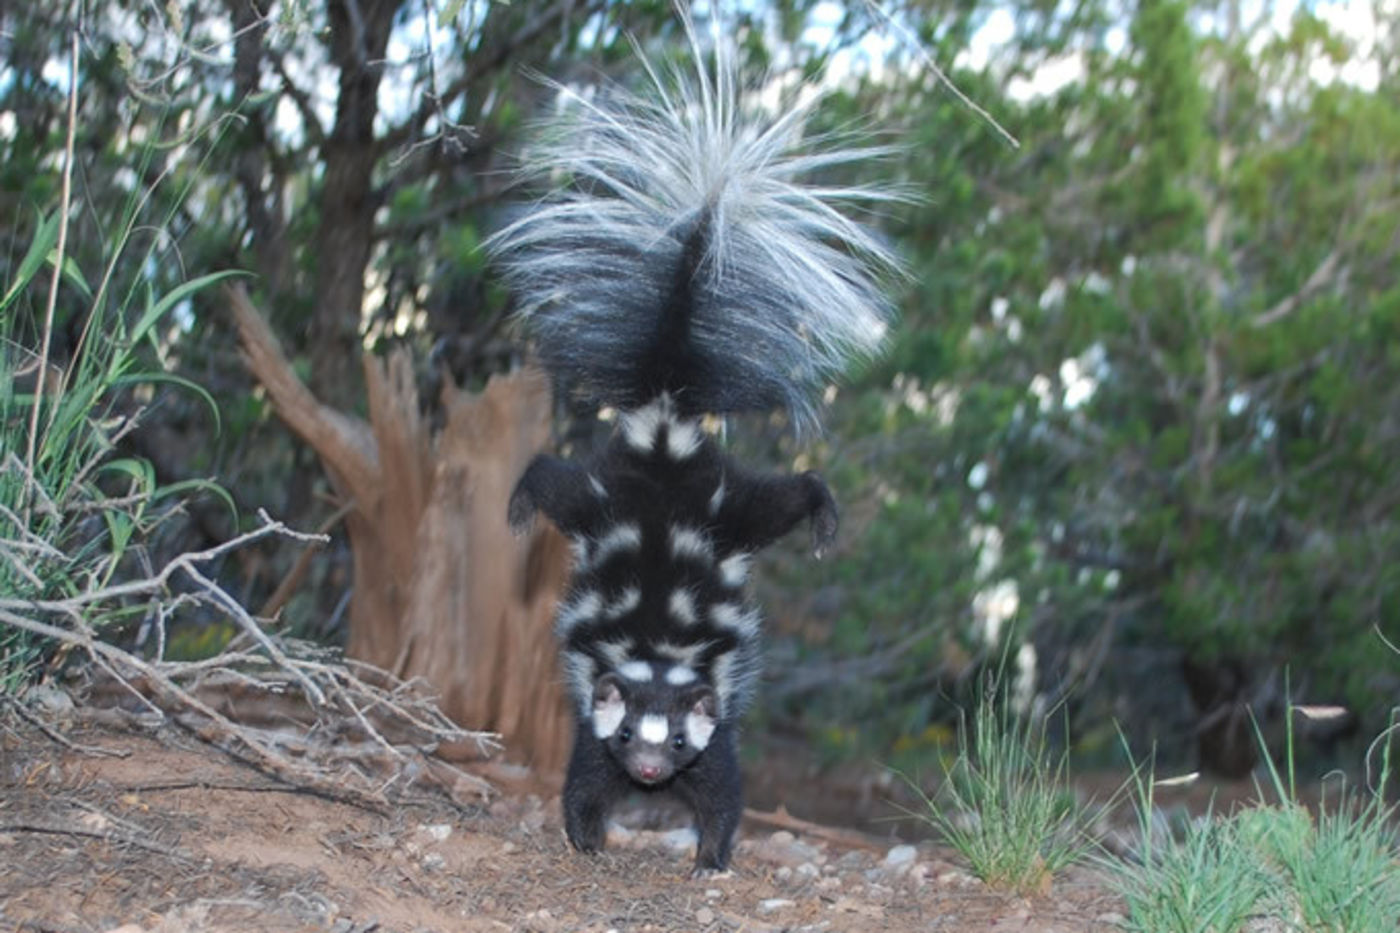 A skunk with white spots and fluffy tail standing on its two front paws